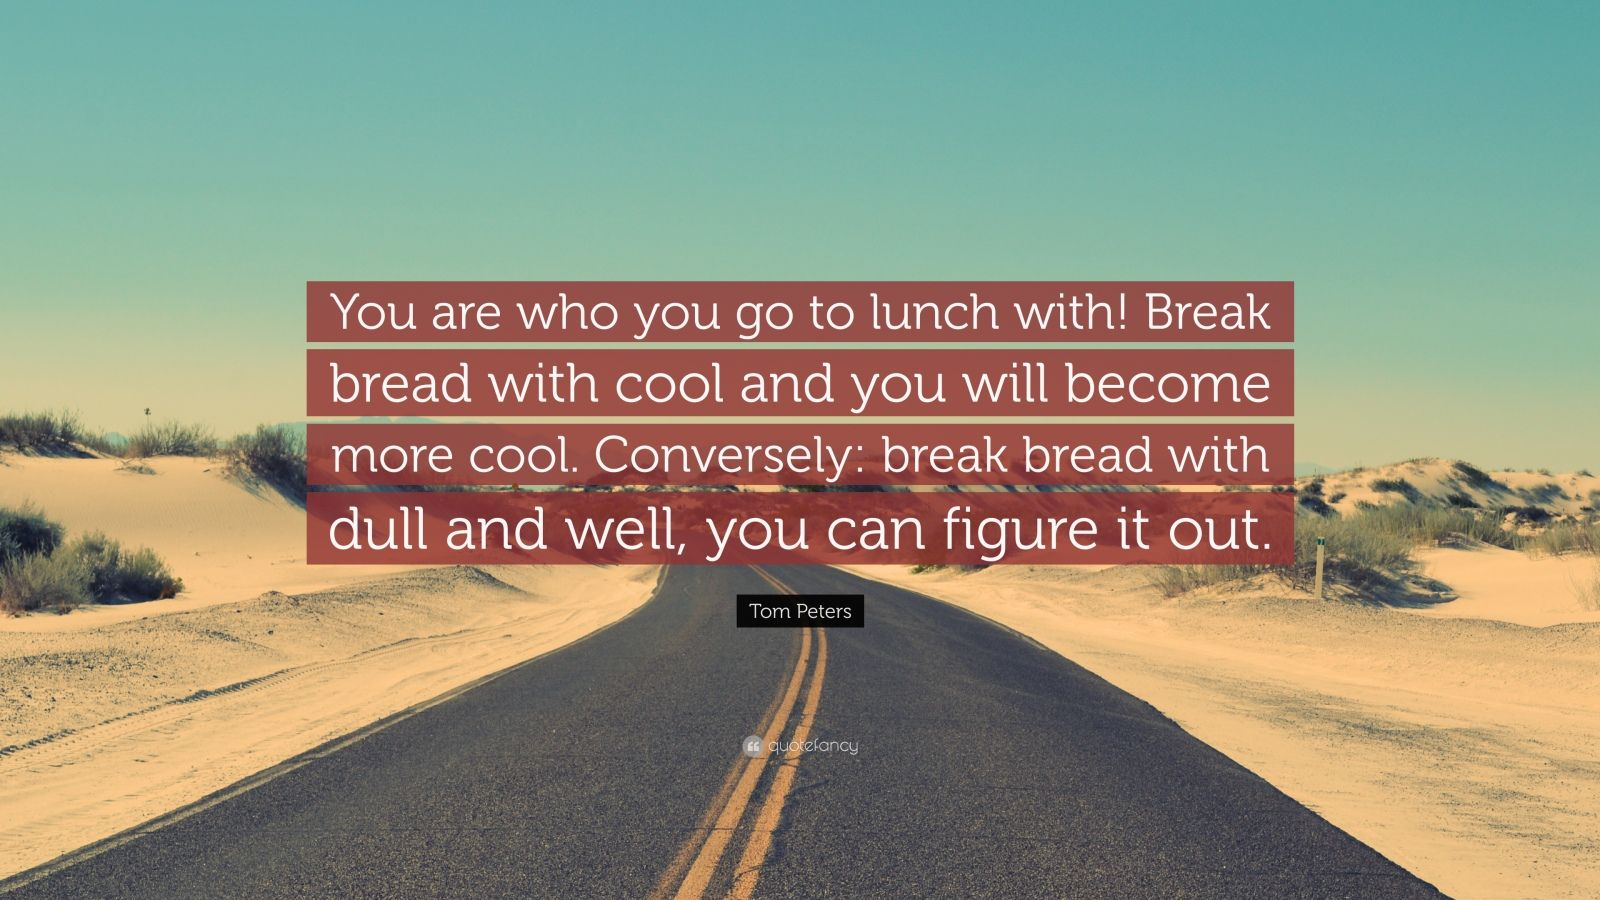 """Tom Peters Quote: """"You are who you go to lunch with! Break bread with cool and you will become more cool. Conversely: break bread with dull and well, you can figure it out."""""""